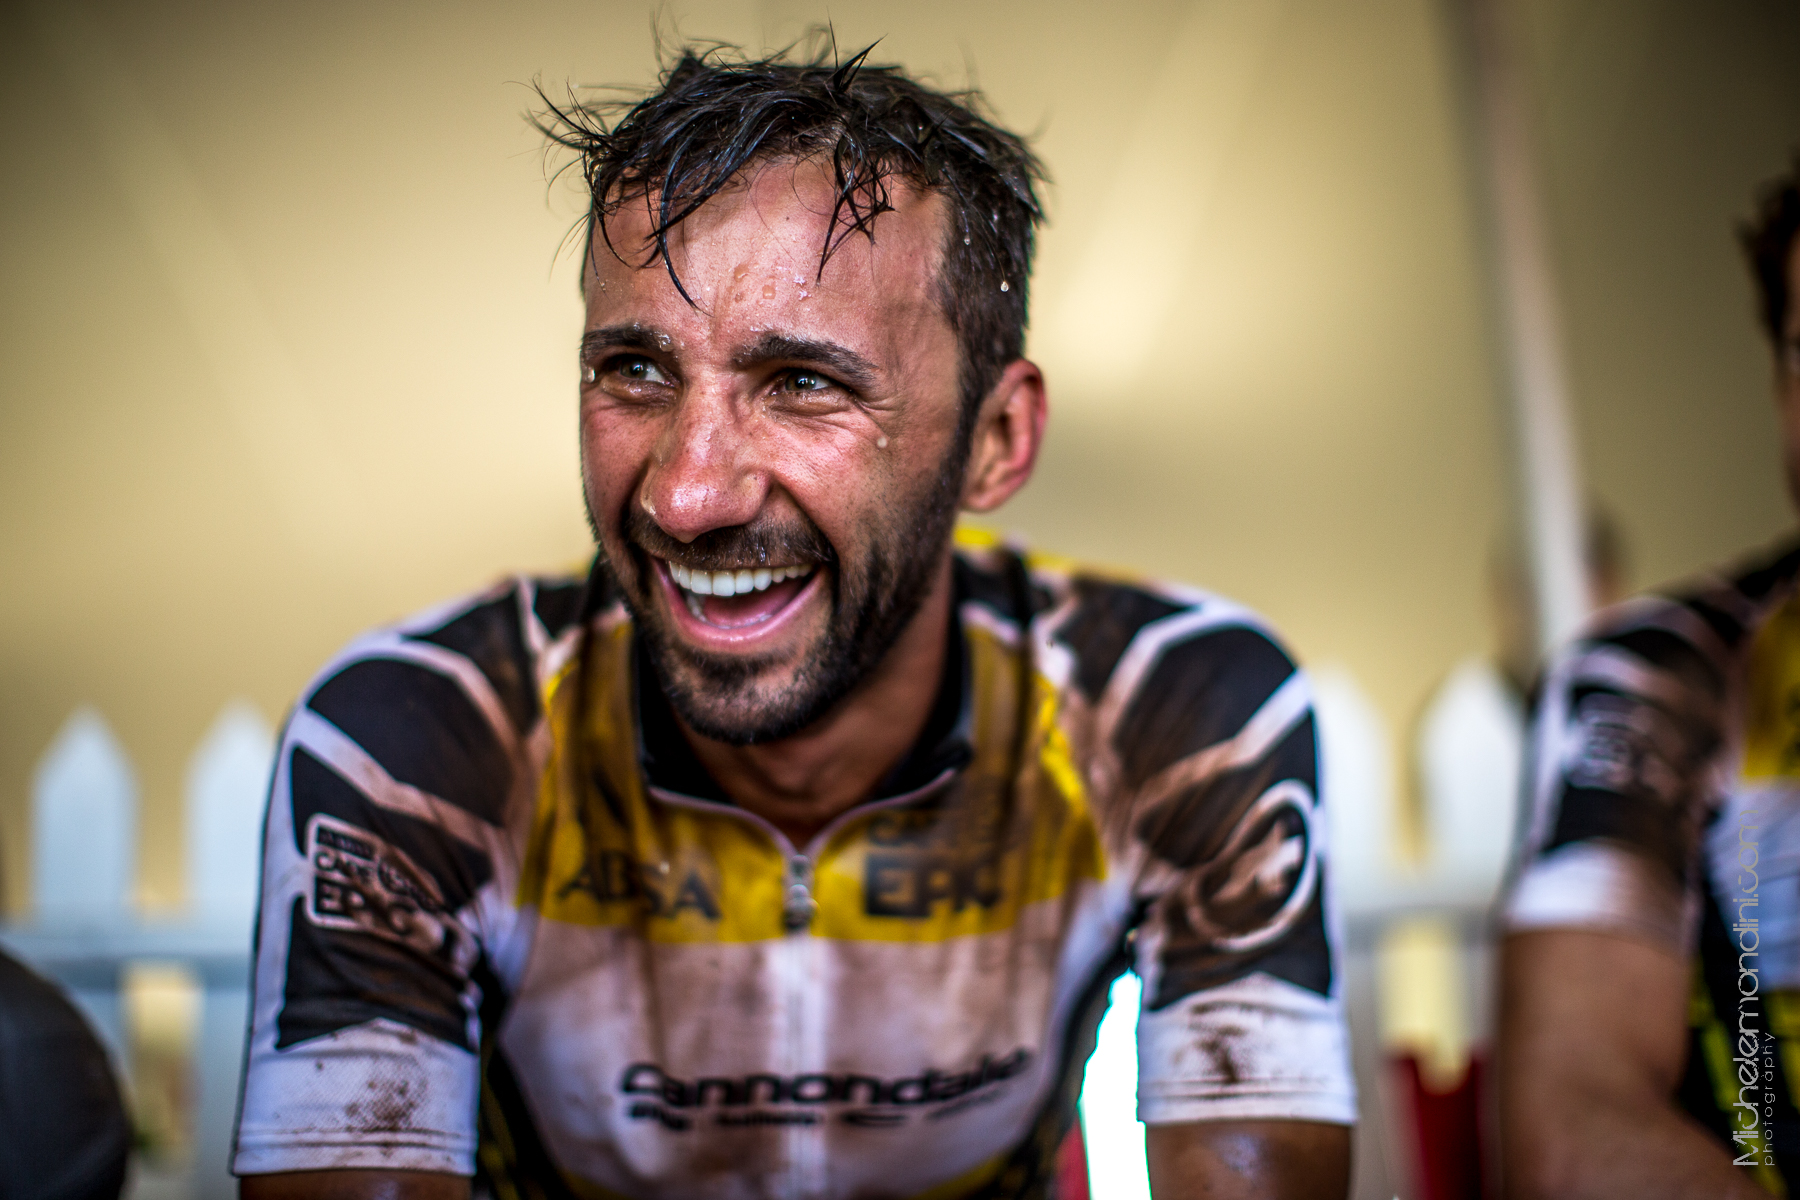 Manuel Fumic smiles discovering to be still in the leader jersey - Ph: Michele Mondini